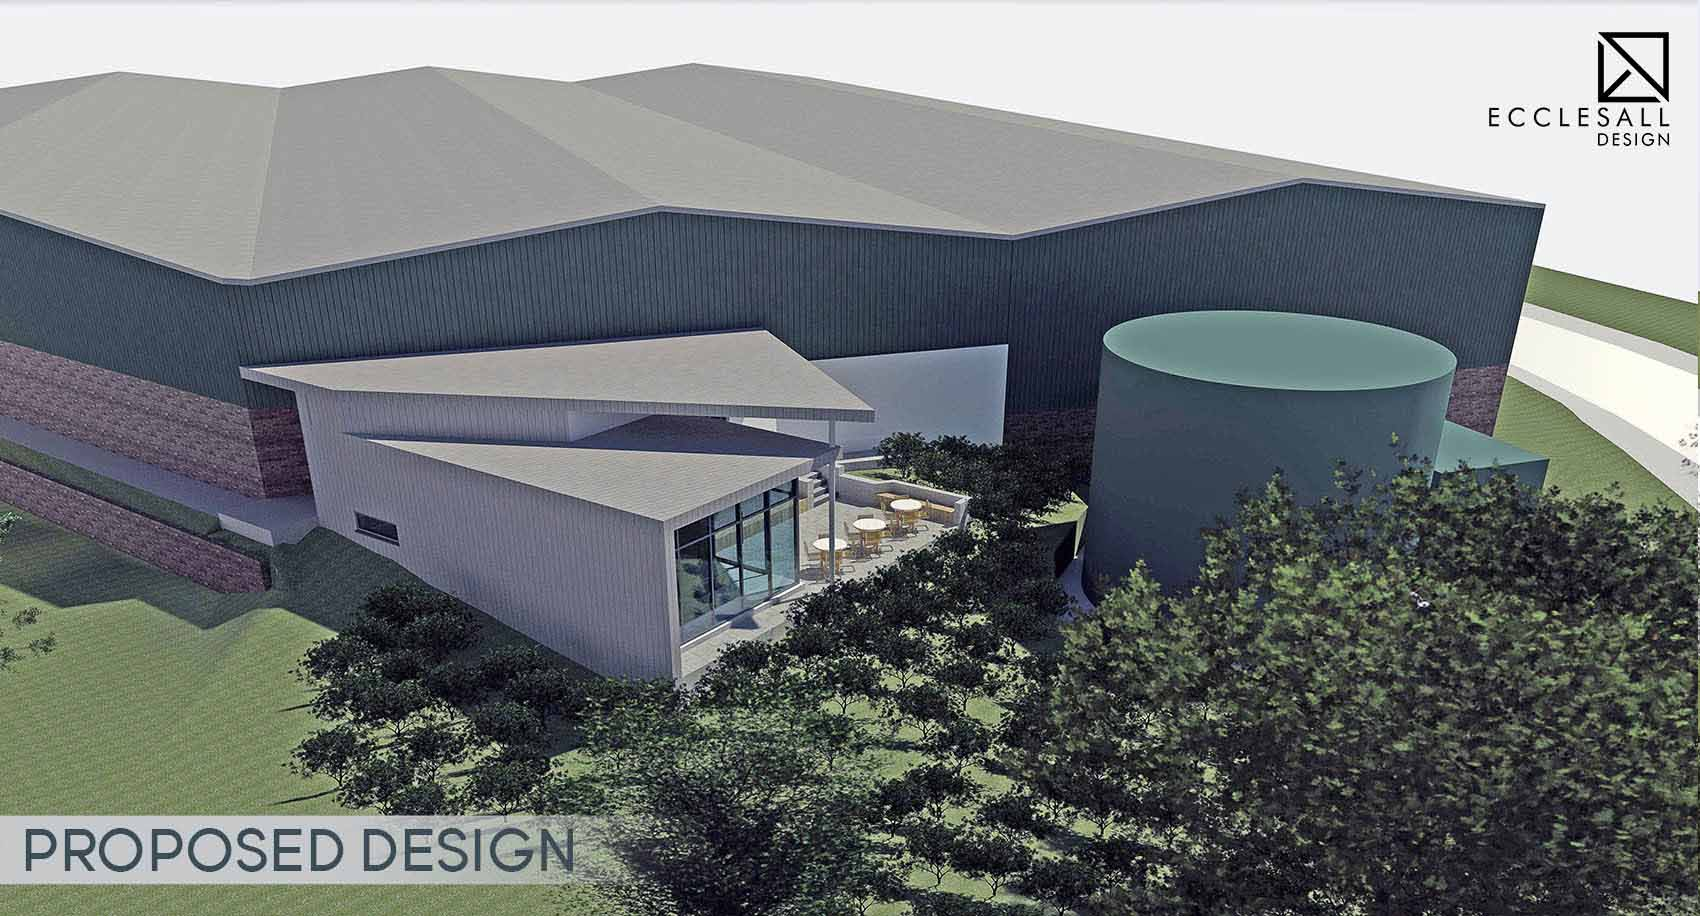 Commercial Architectural Project Services Ecclesall Design